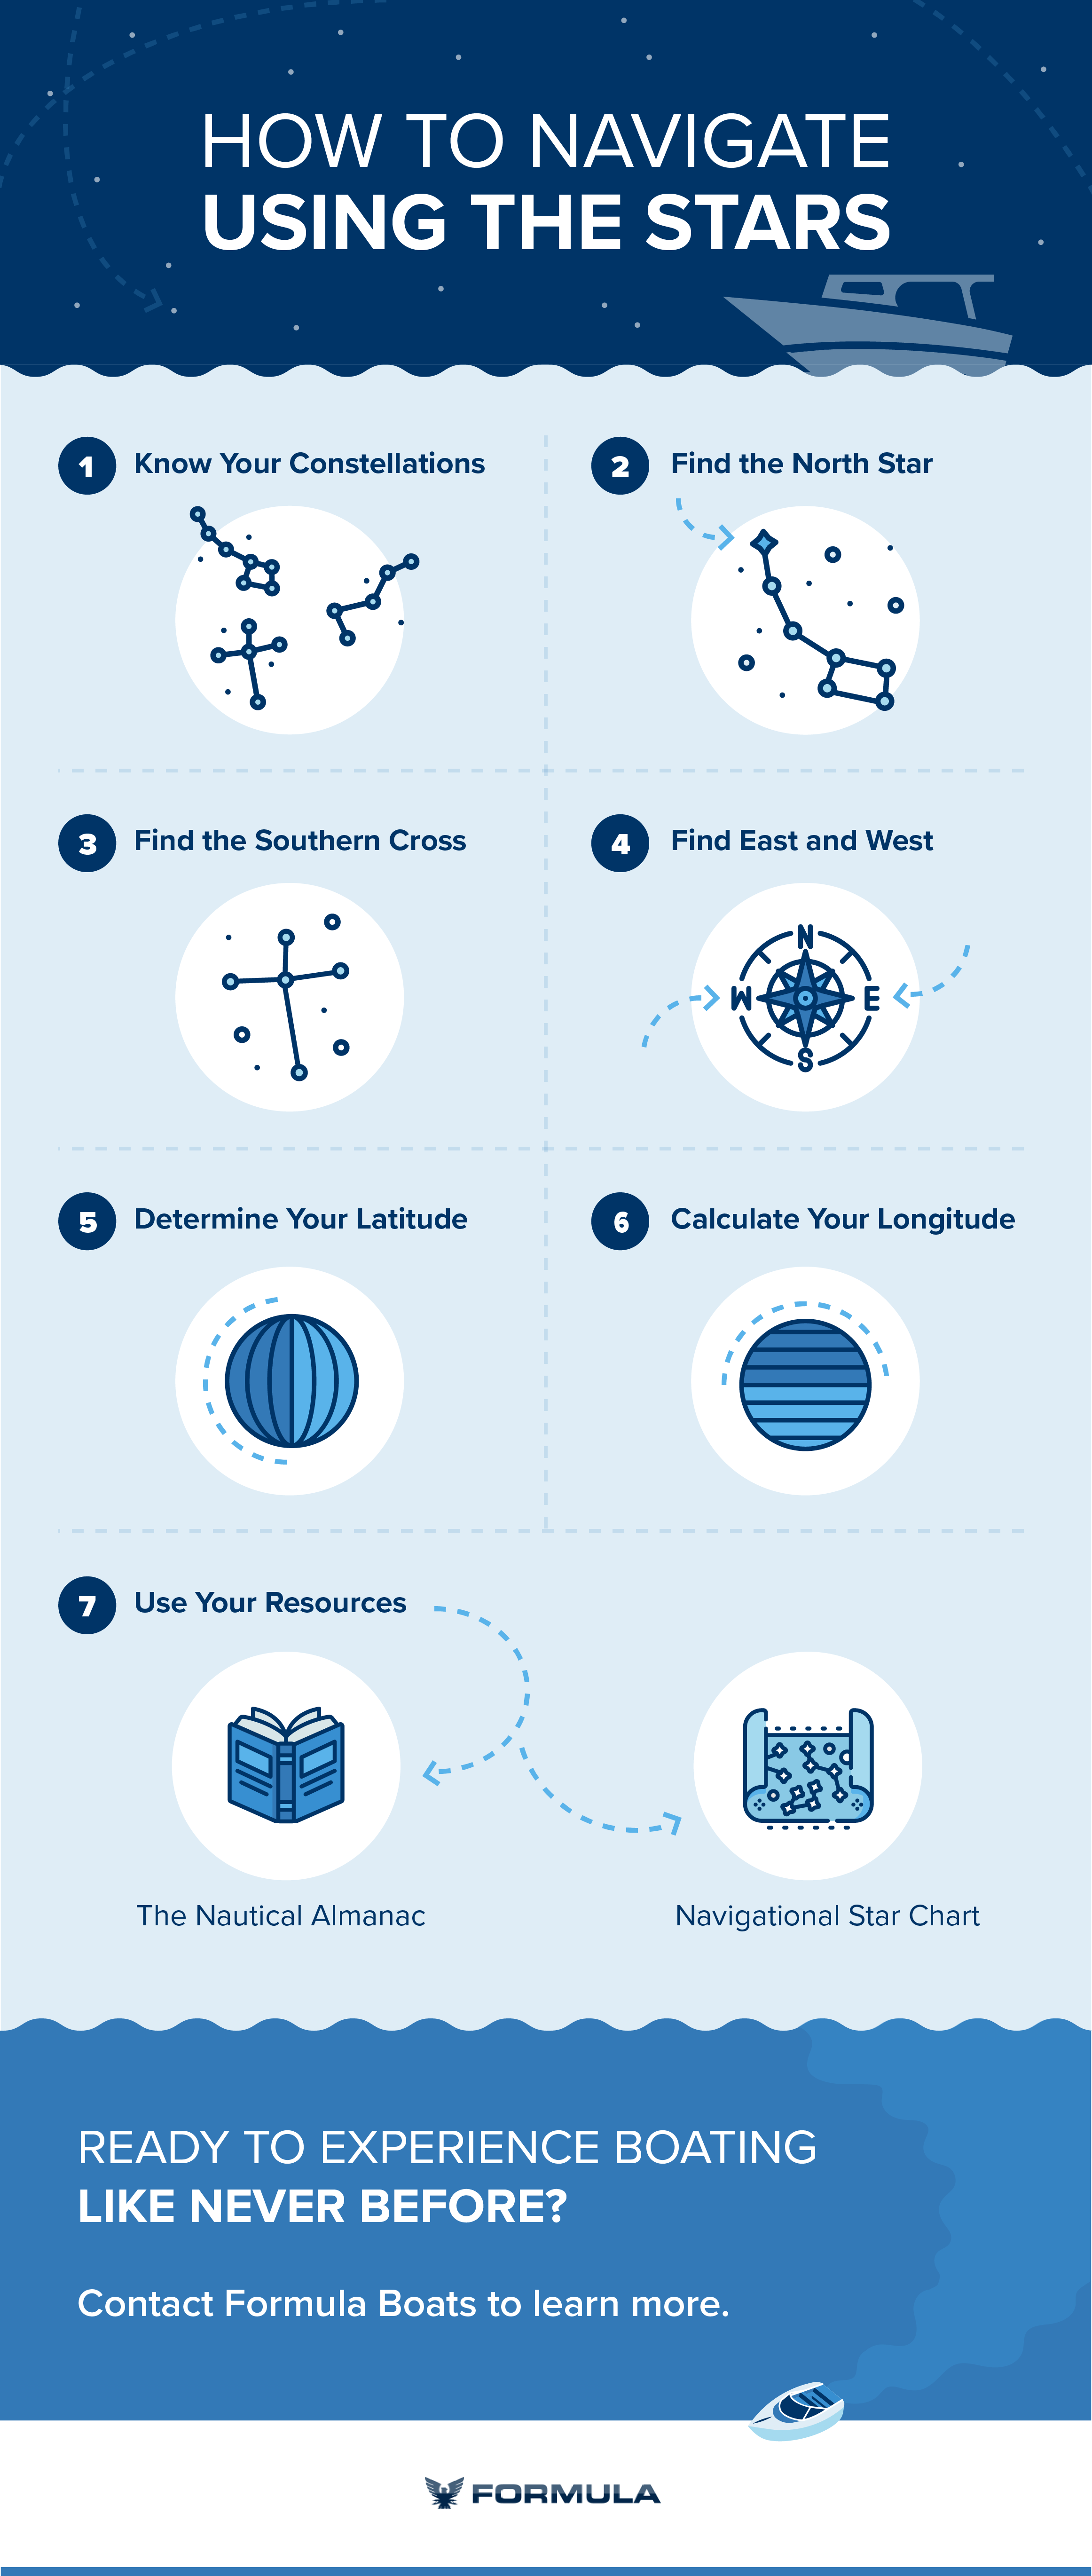 how to navigate using the stars infographic